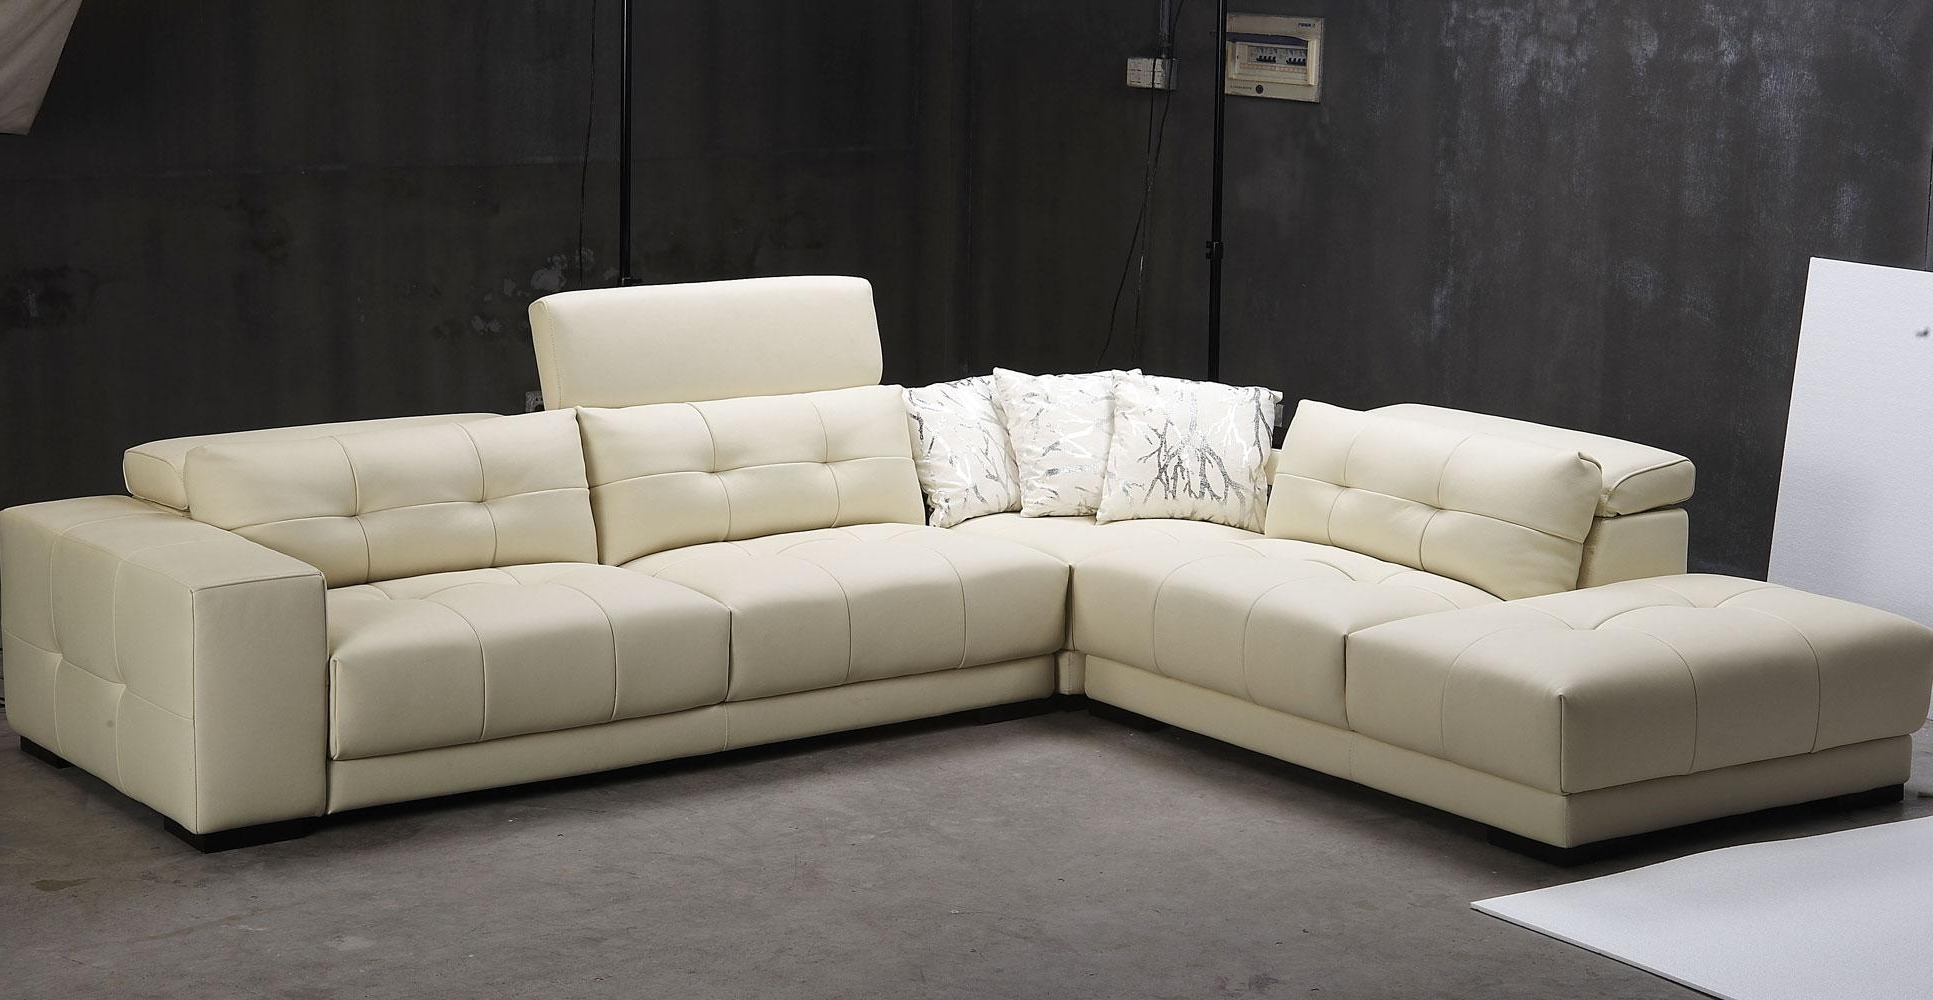 Widely Used Sofa : Modern Sectional Sofas Miami Home Design Furniture For Miami Sectional Sofas (View 15 of 15)